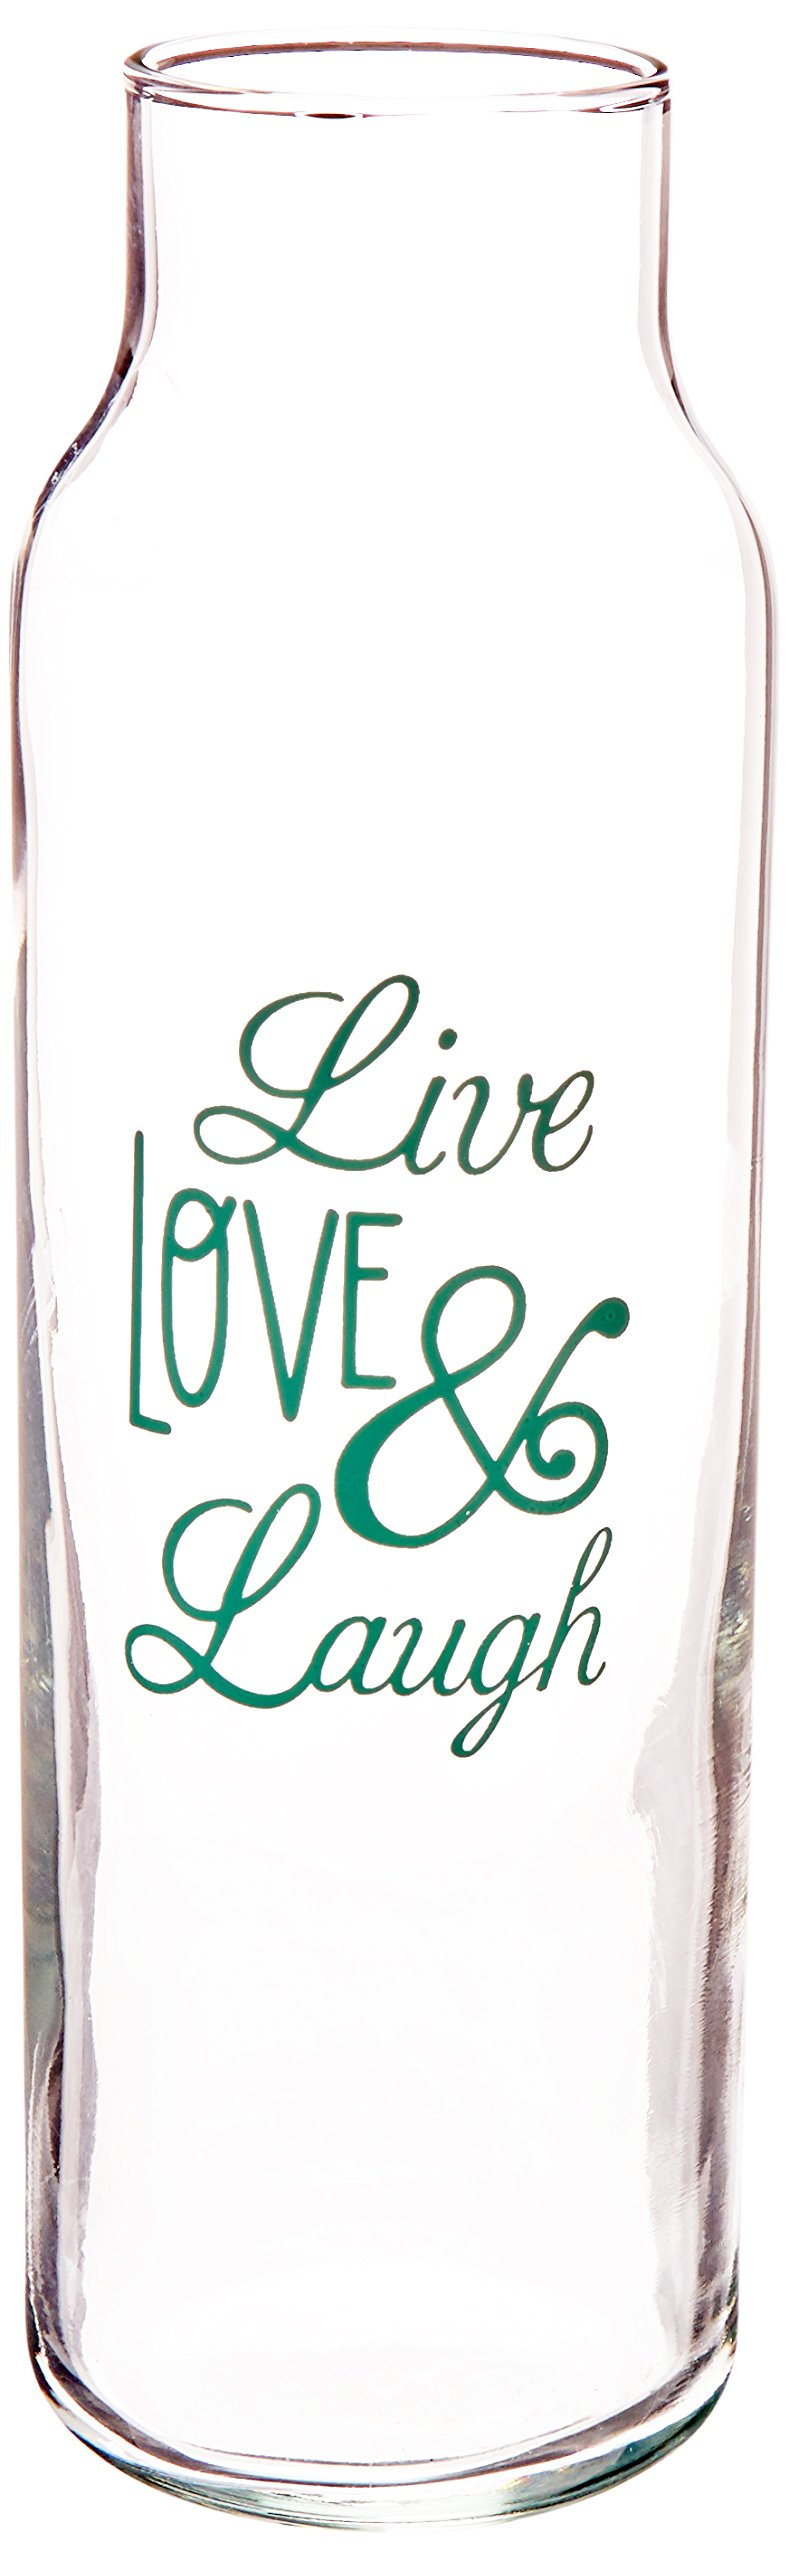 Hortense B. Hewitt Live Love and Laugh Cylinder Vase by Hortense B. Hewitt (Image #1)